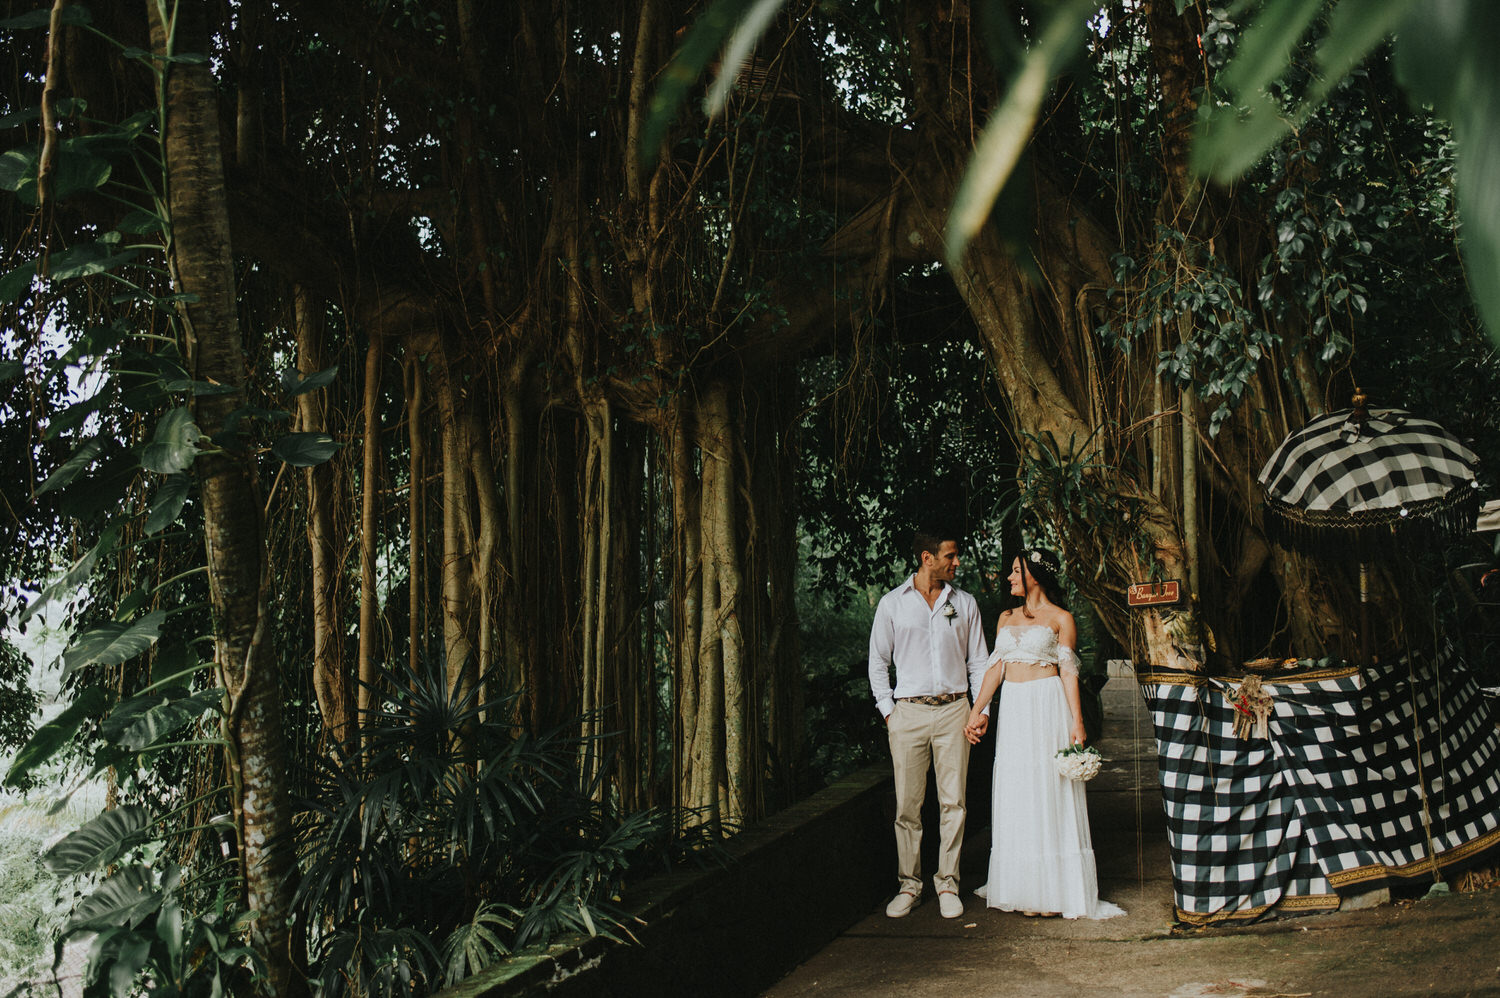 bali wedding - elopement - ubud wedding - diktatphotography - olga + Jason - 63